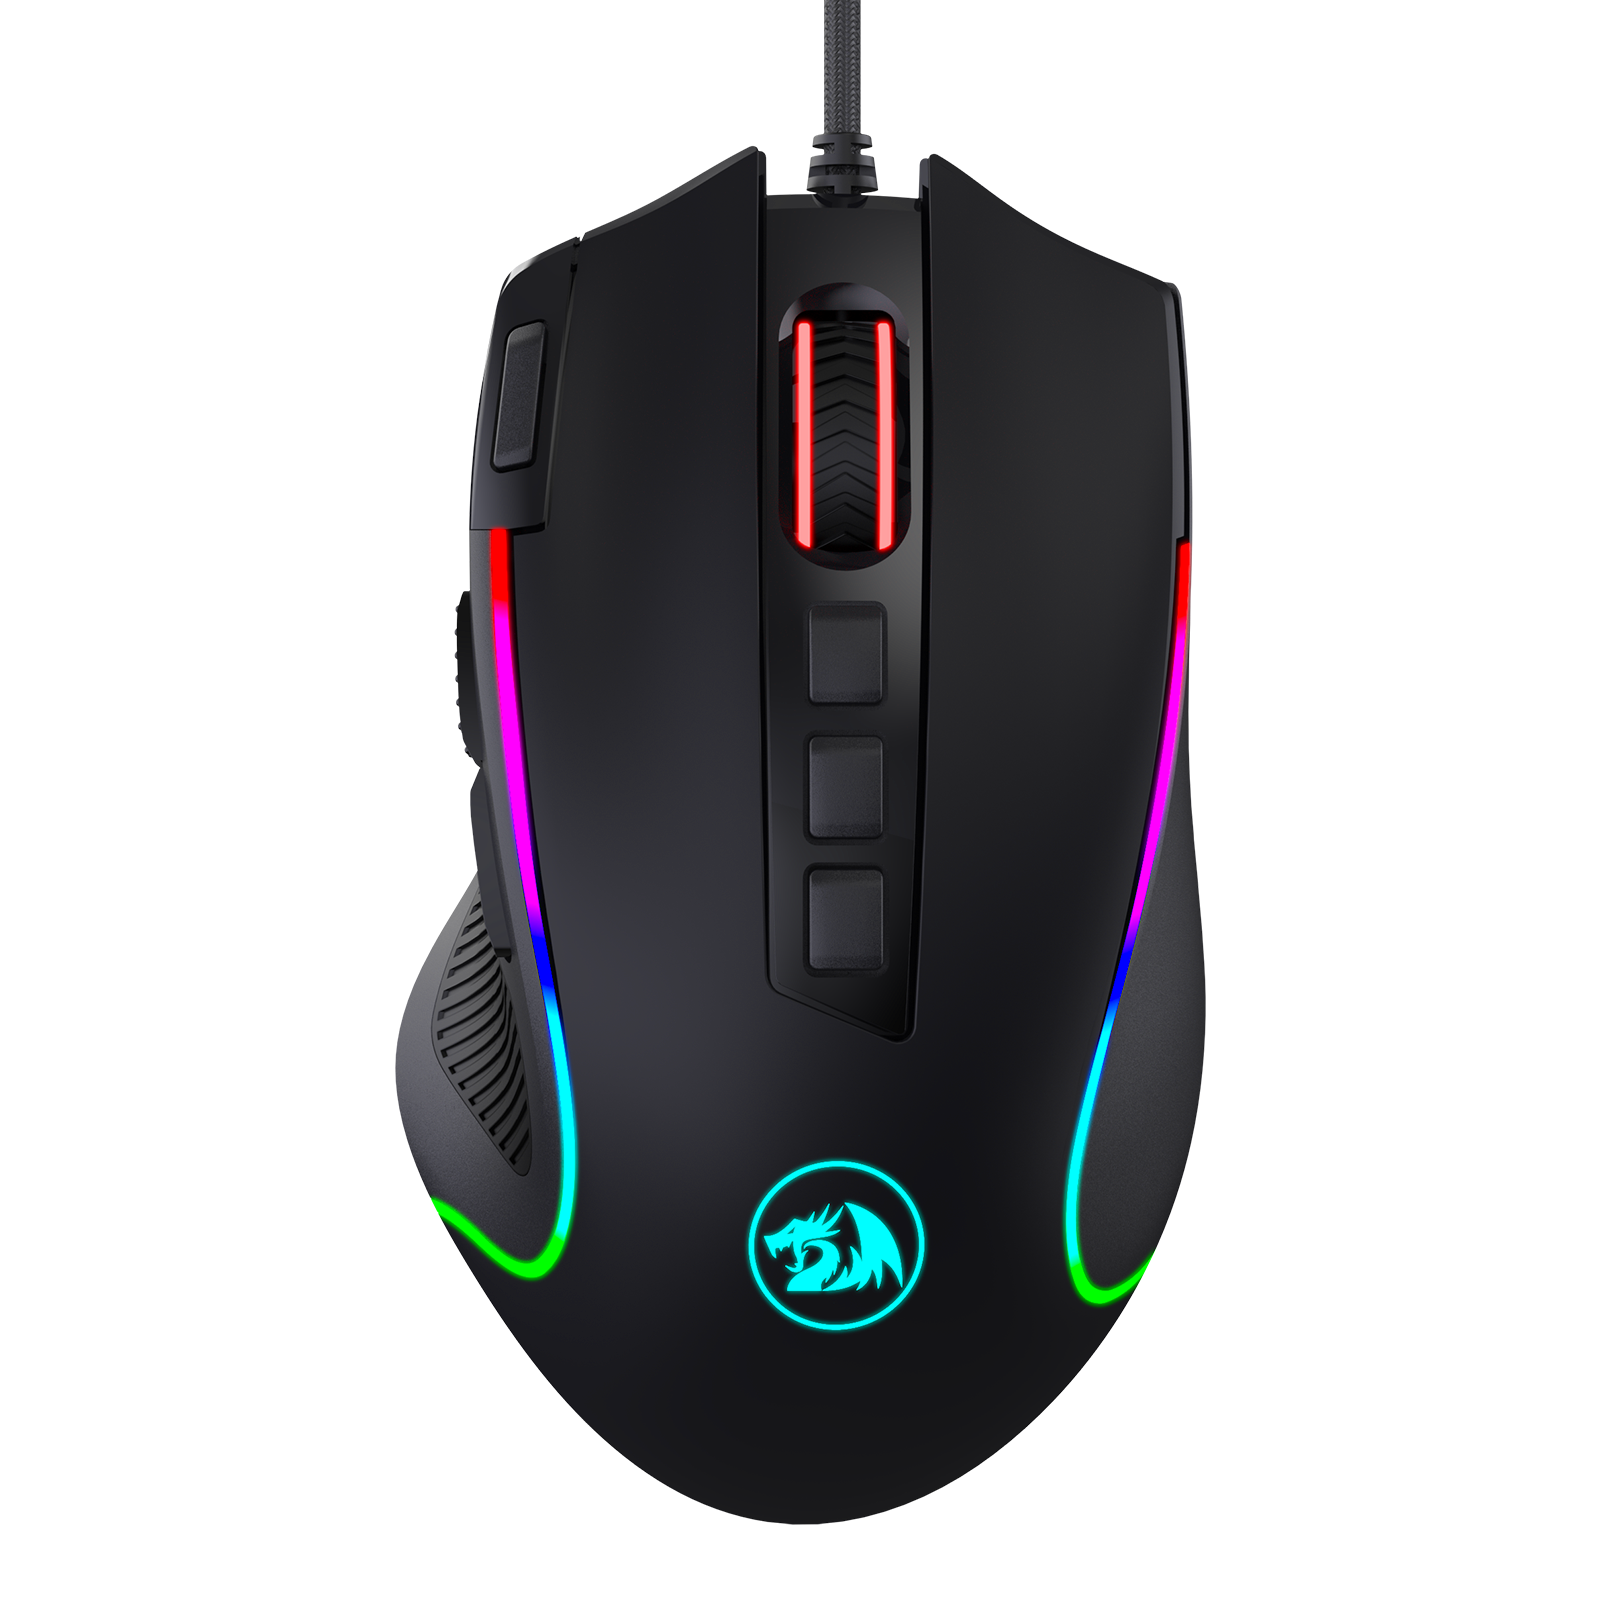 Redragon M612 Predator RGB Gaming Mouse